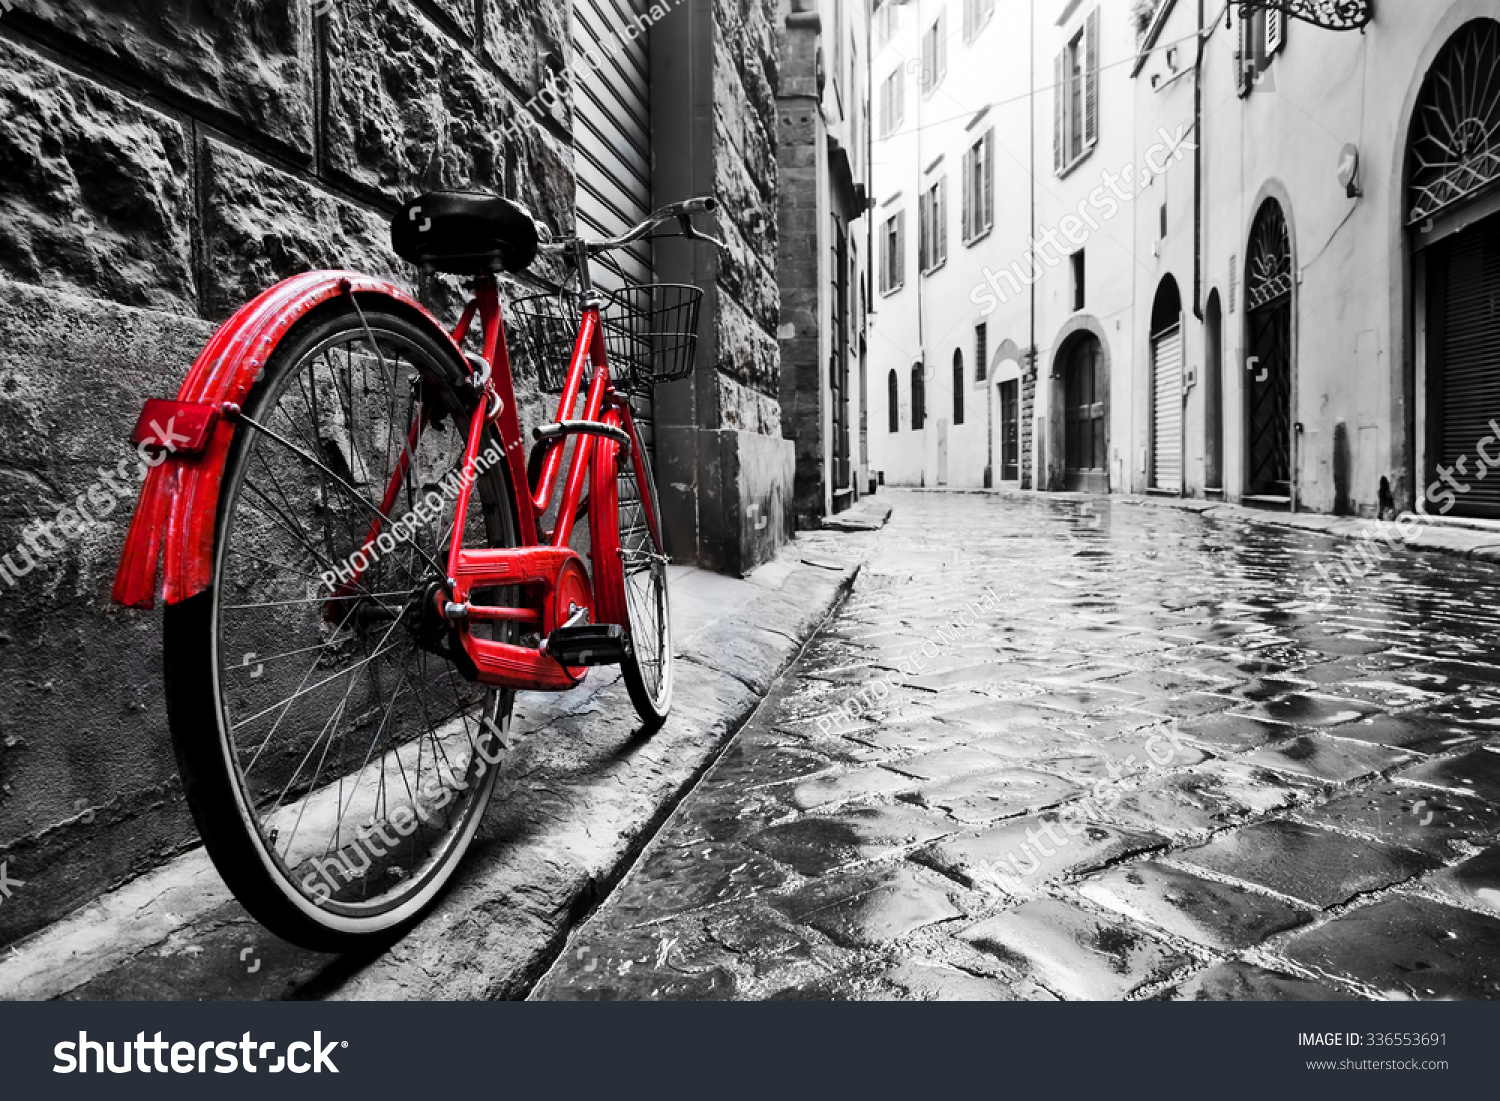 Retro vintage red bike on cobblestone street in the old town. Color in black and white. Old charming bicycle concept. #336553691